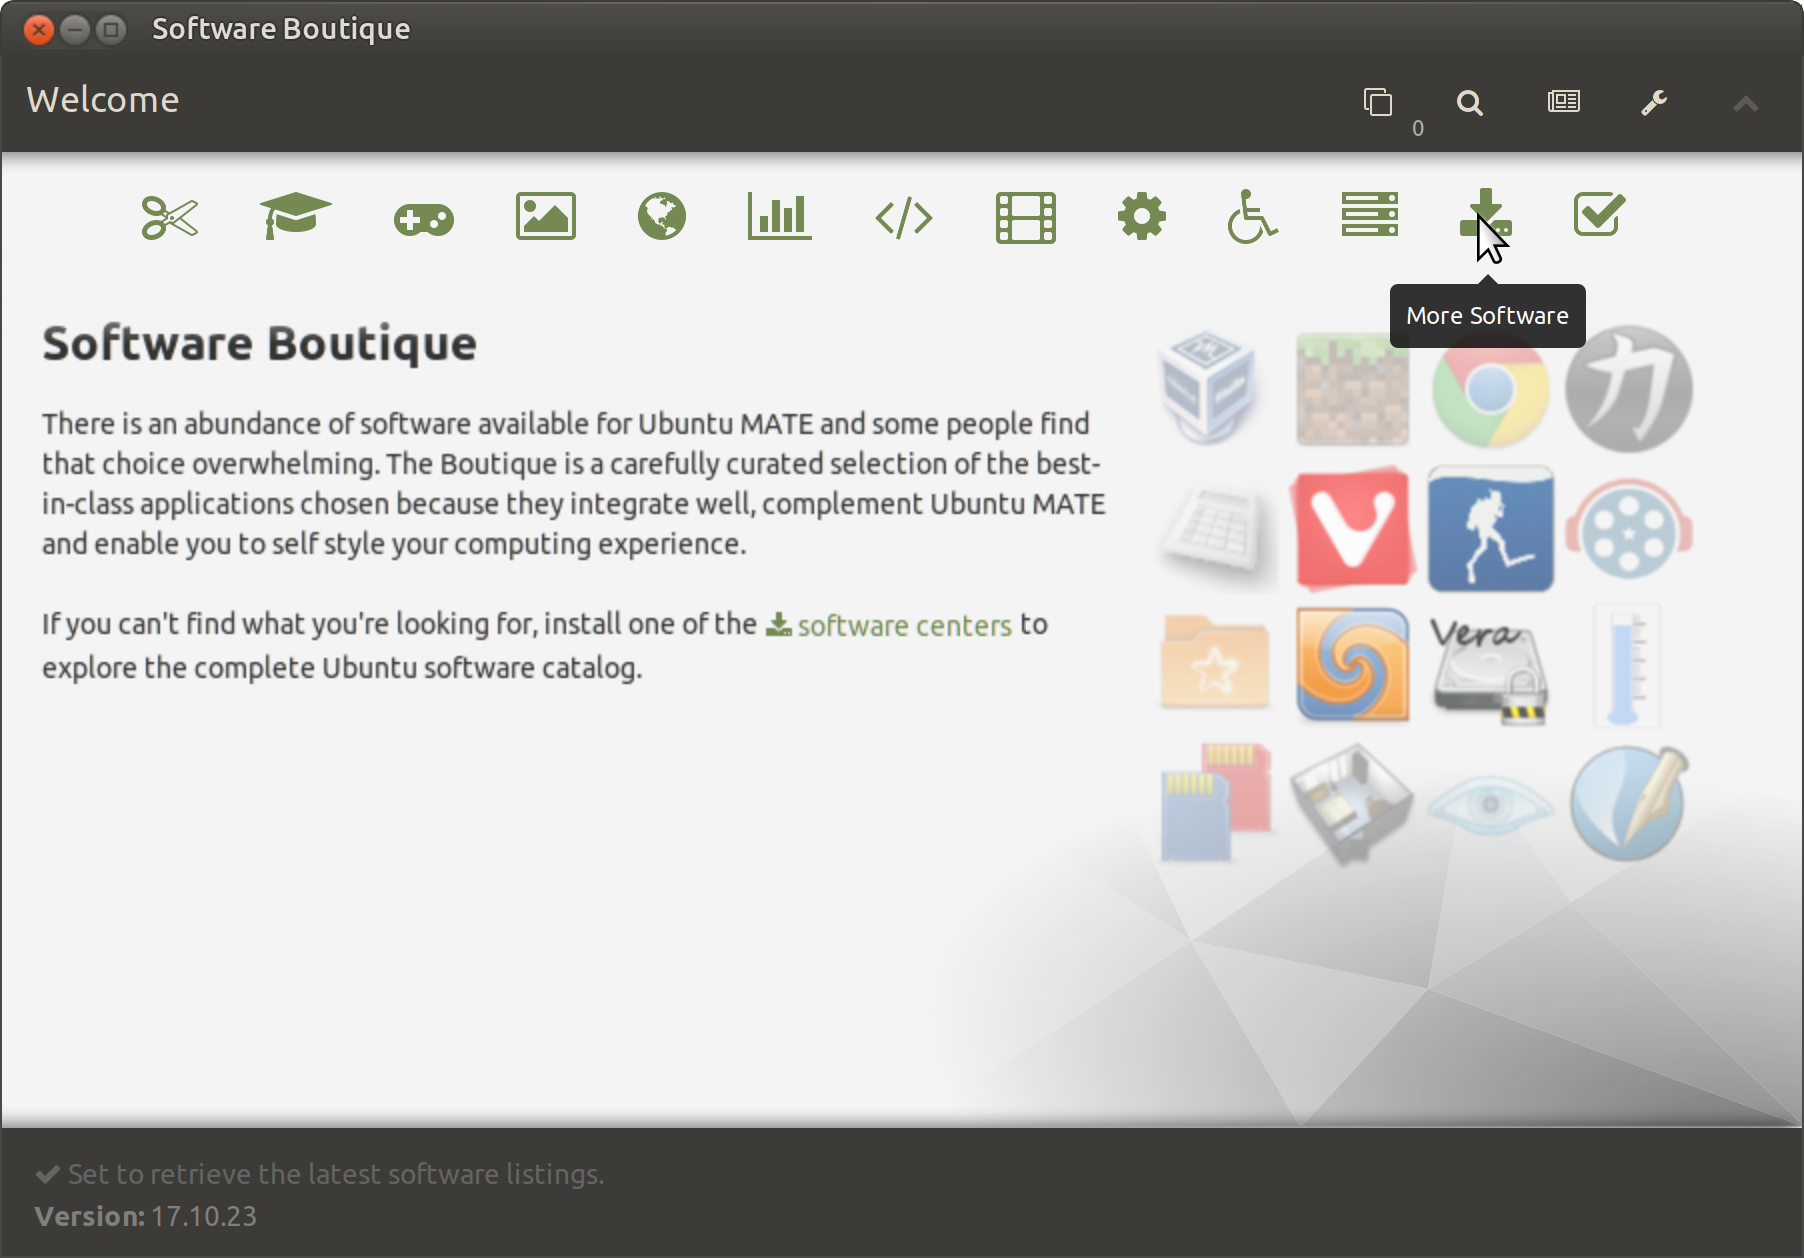 Going Linux · Using the Ubuntu MATE Software Boutique